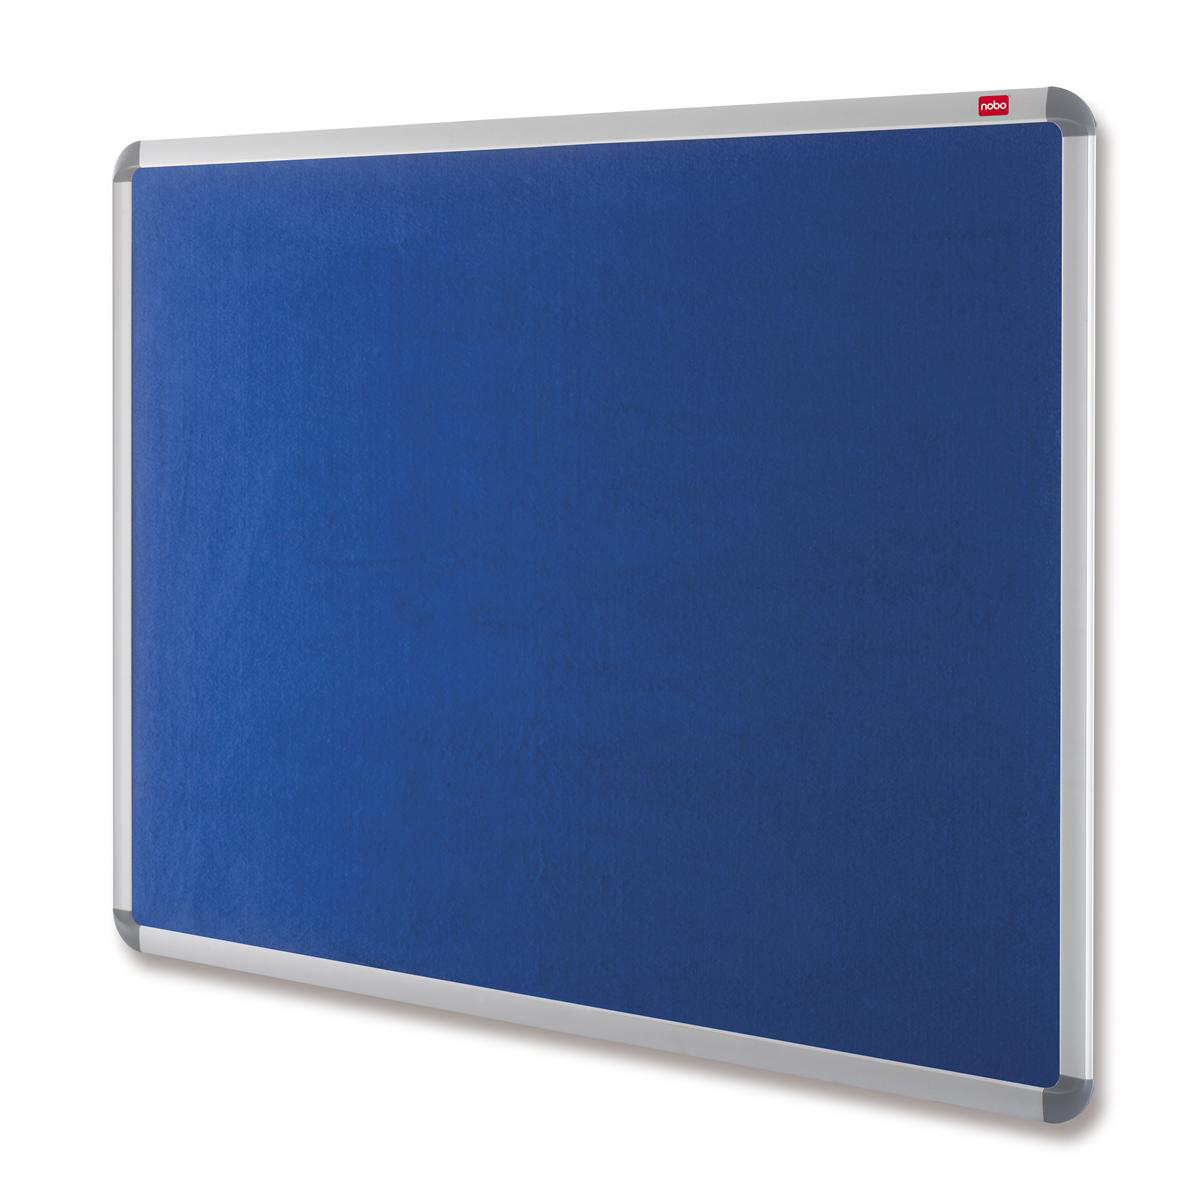 Nobo Prestige Felt Noticeboard with Fixings and Aluminium Frame W900xH600mm Blue Ref 30230174